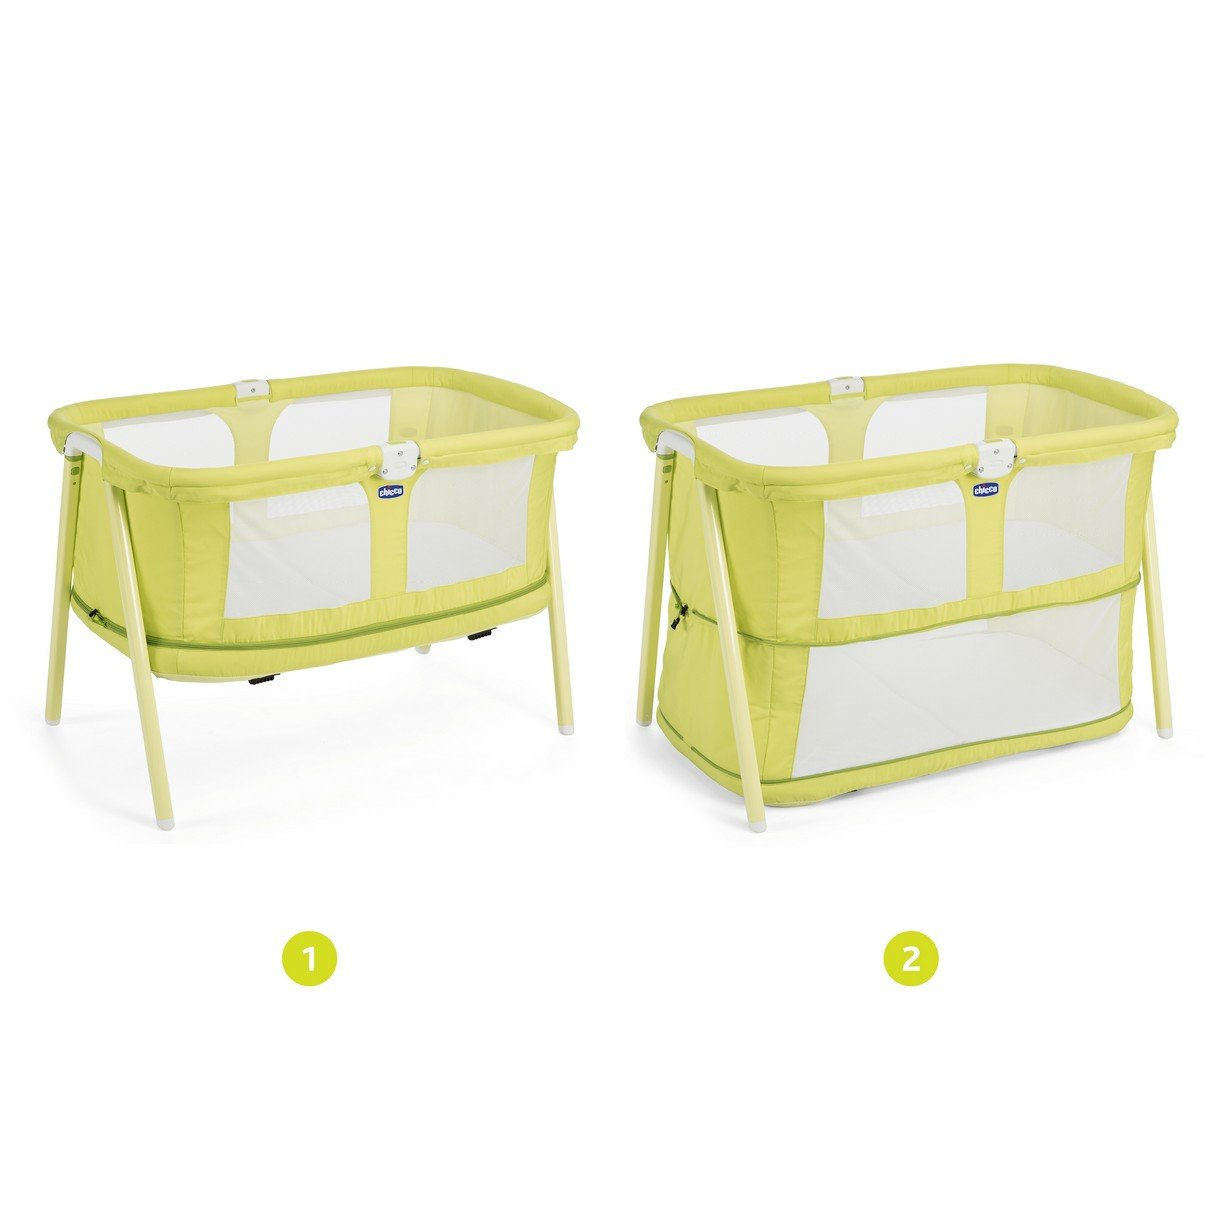 Chicco Lullago - Cuna ultraligera y compacta, 7kg, color amarillo